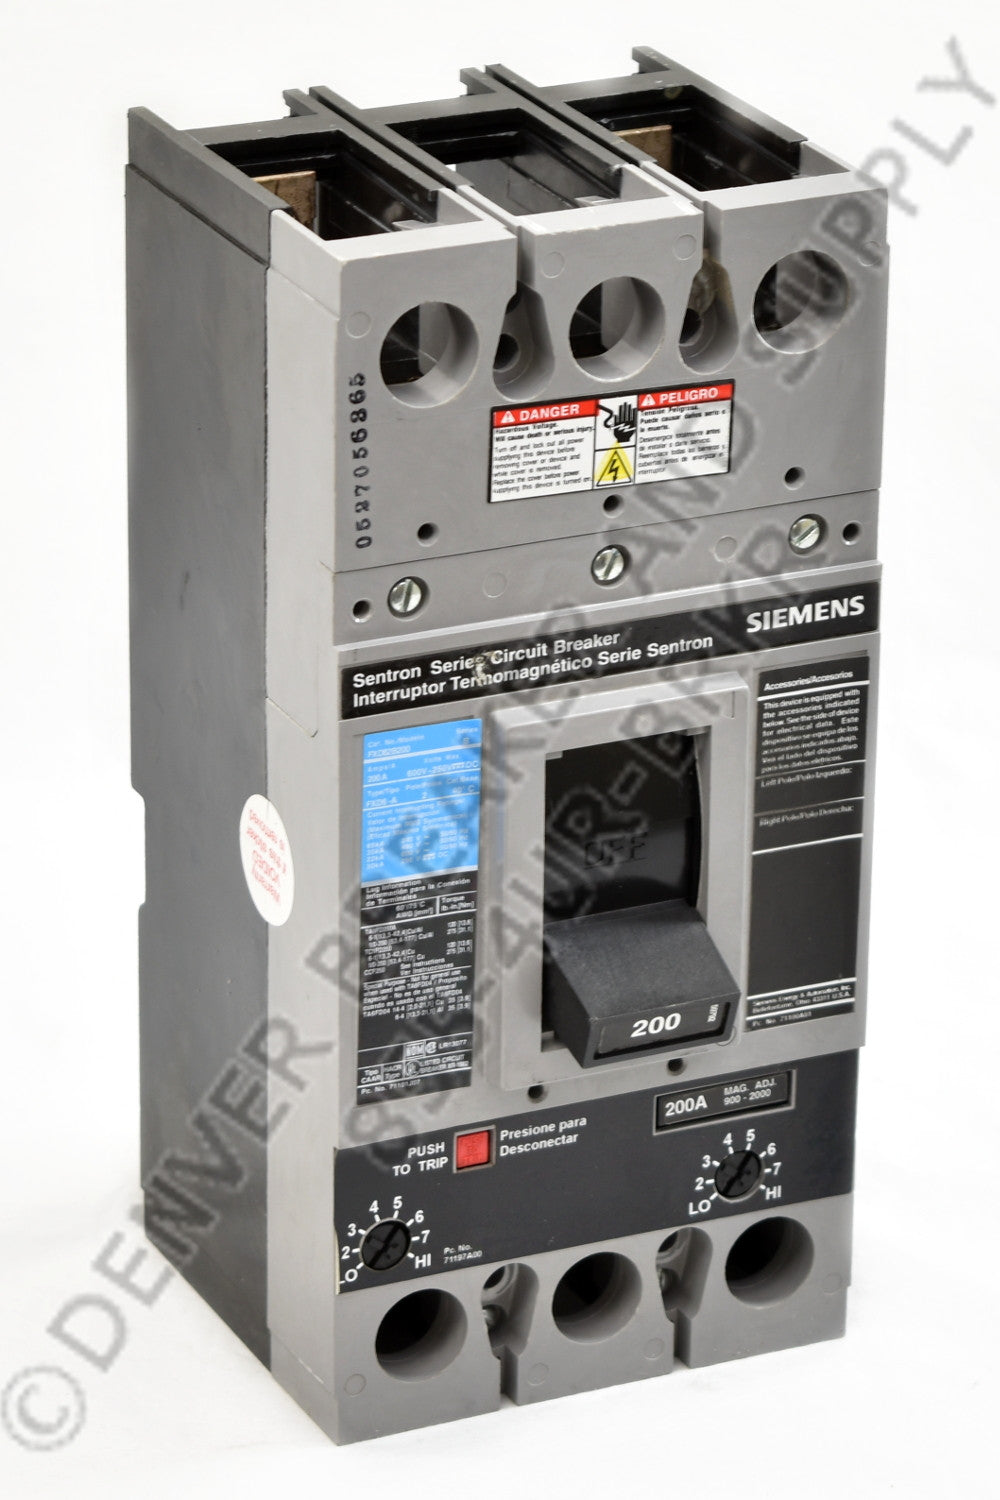 Siemens FD62B090 Circuit Breakers